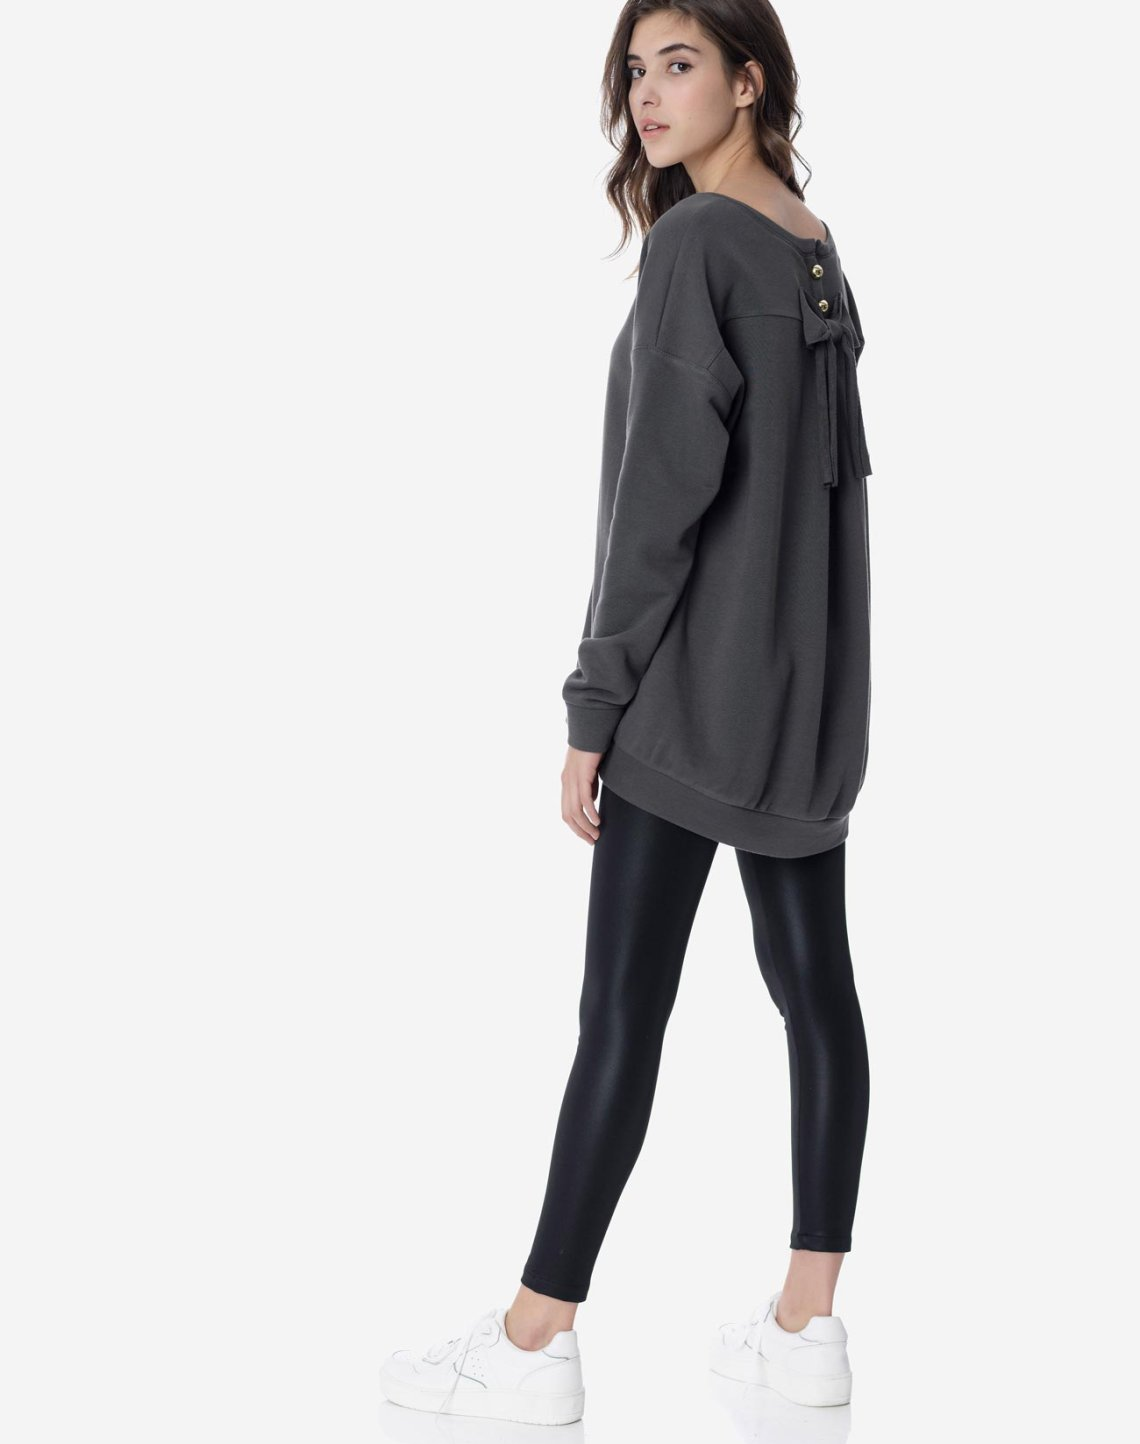 Sweatshirt with bow detail